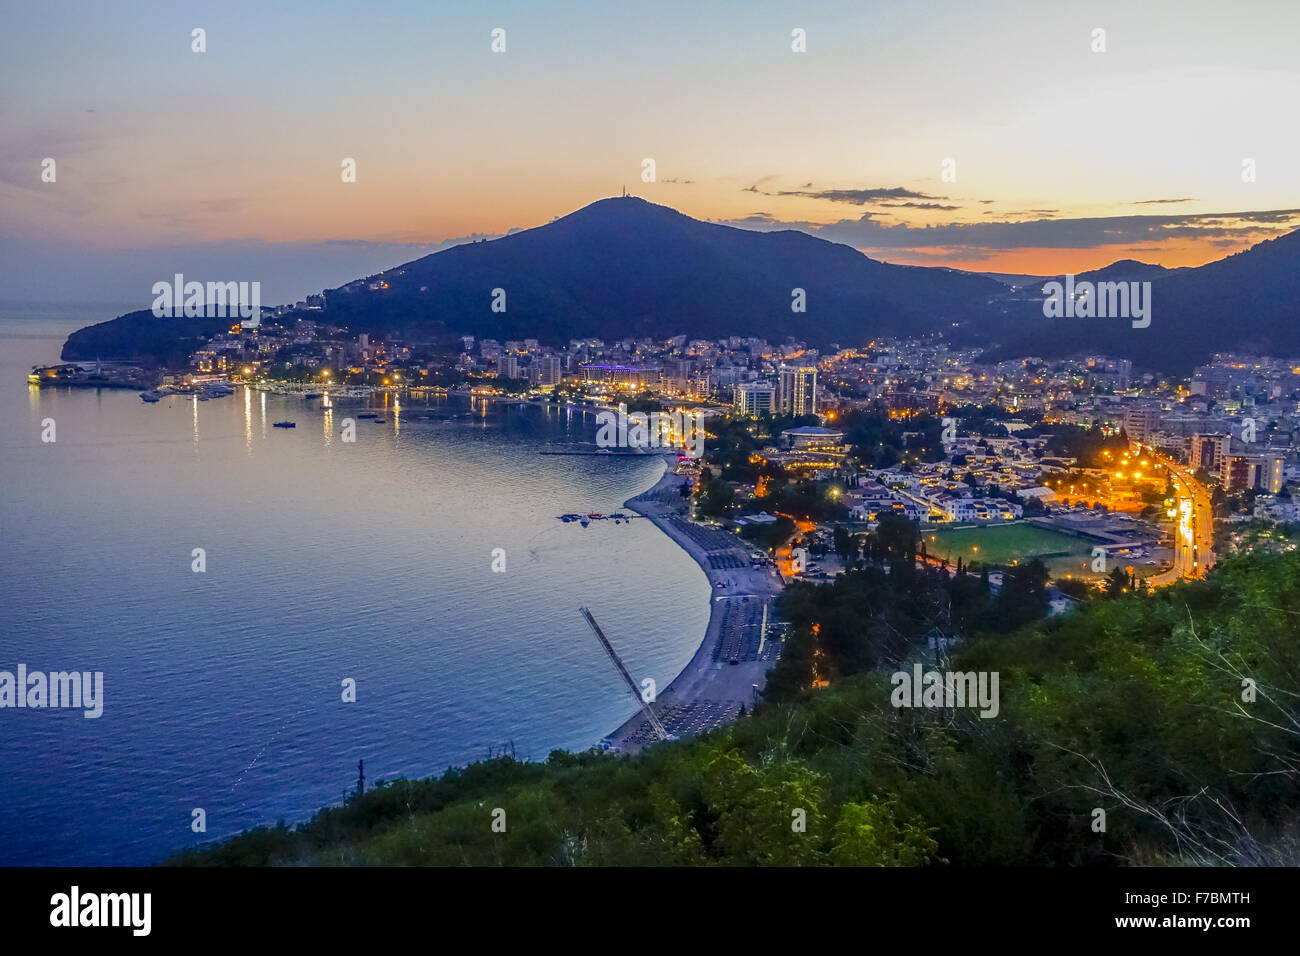 Budva at night, Montenegro, Budva - Stock Image